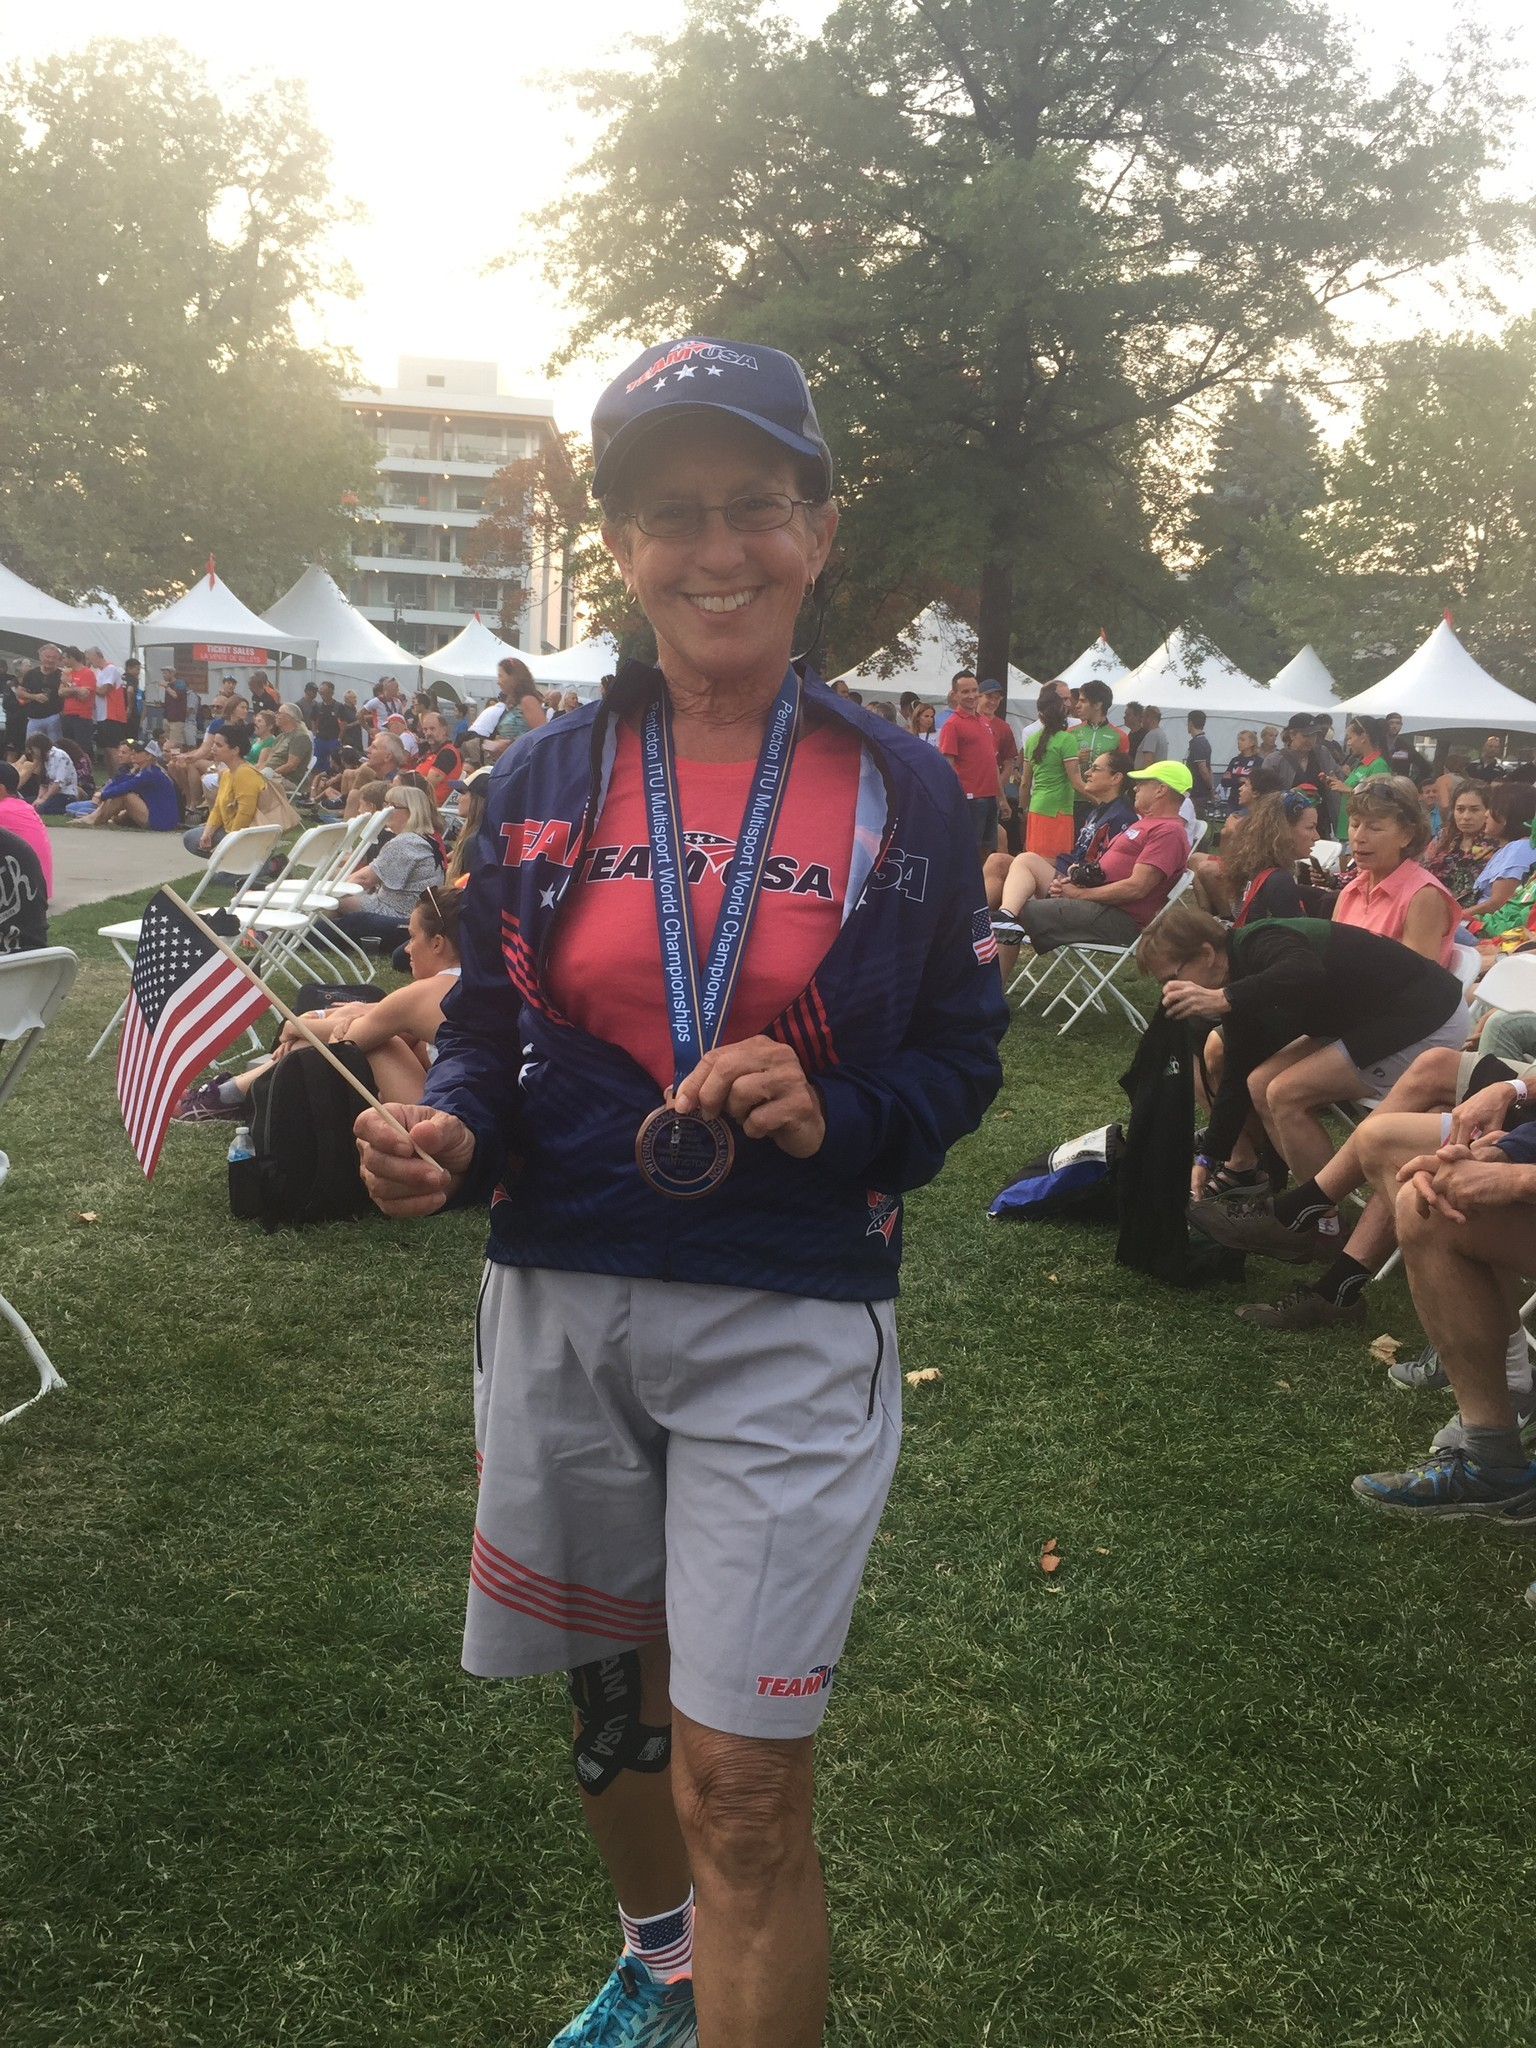 Judi Carbary with her medal.